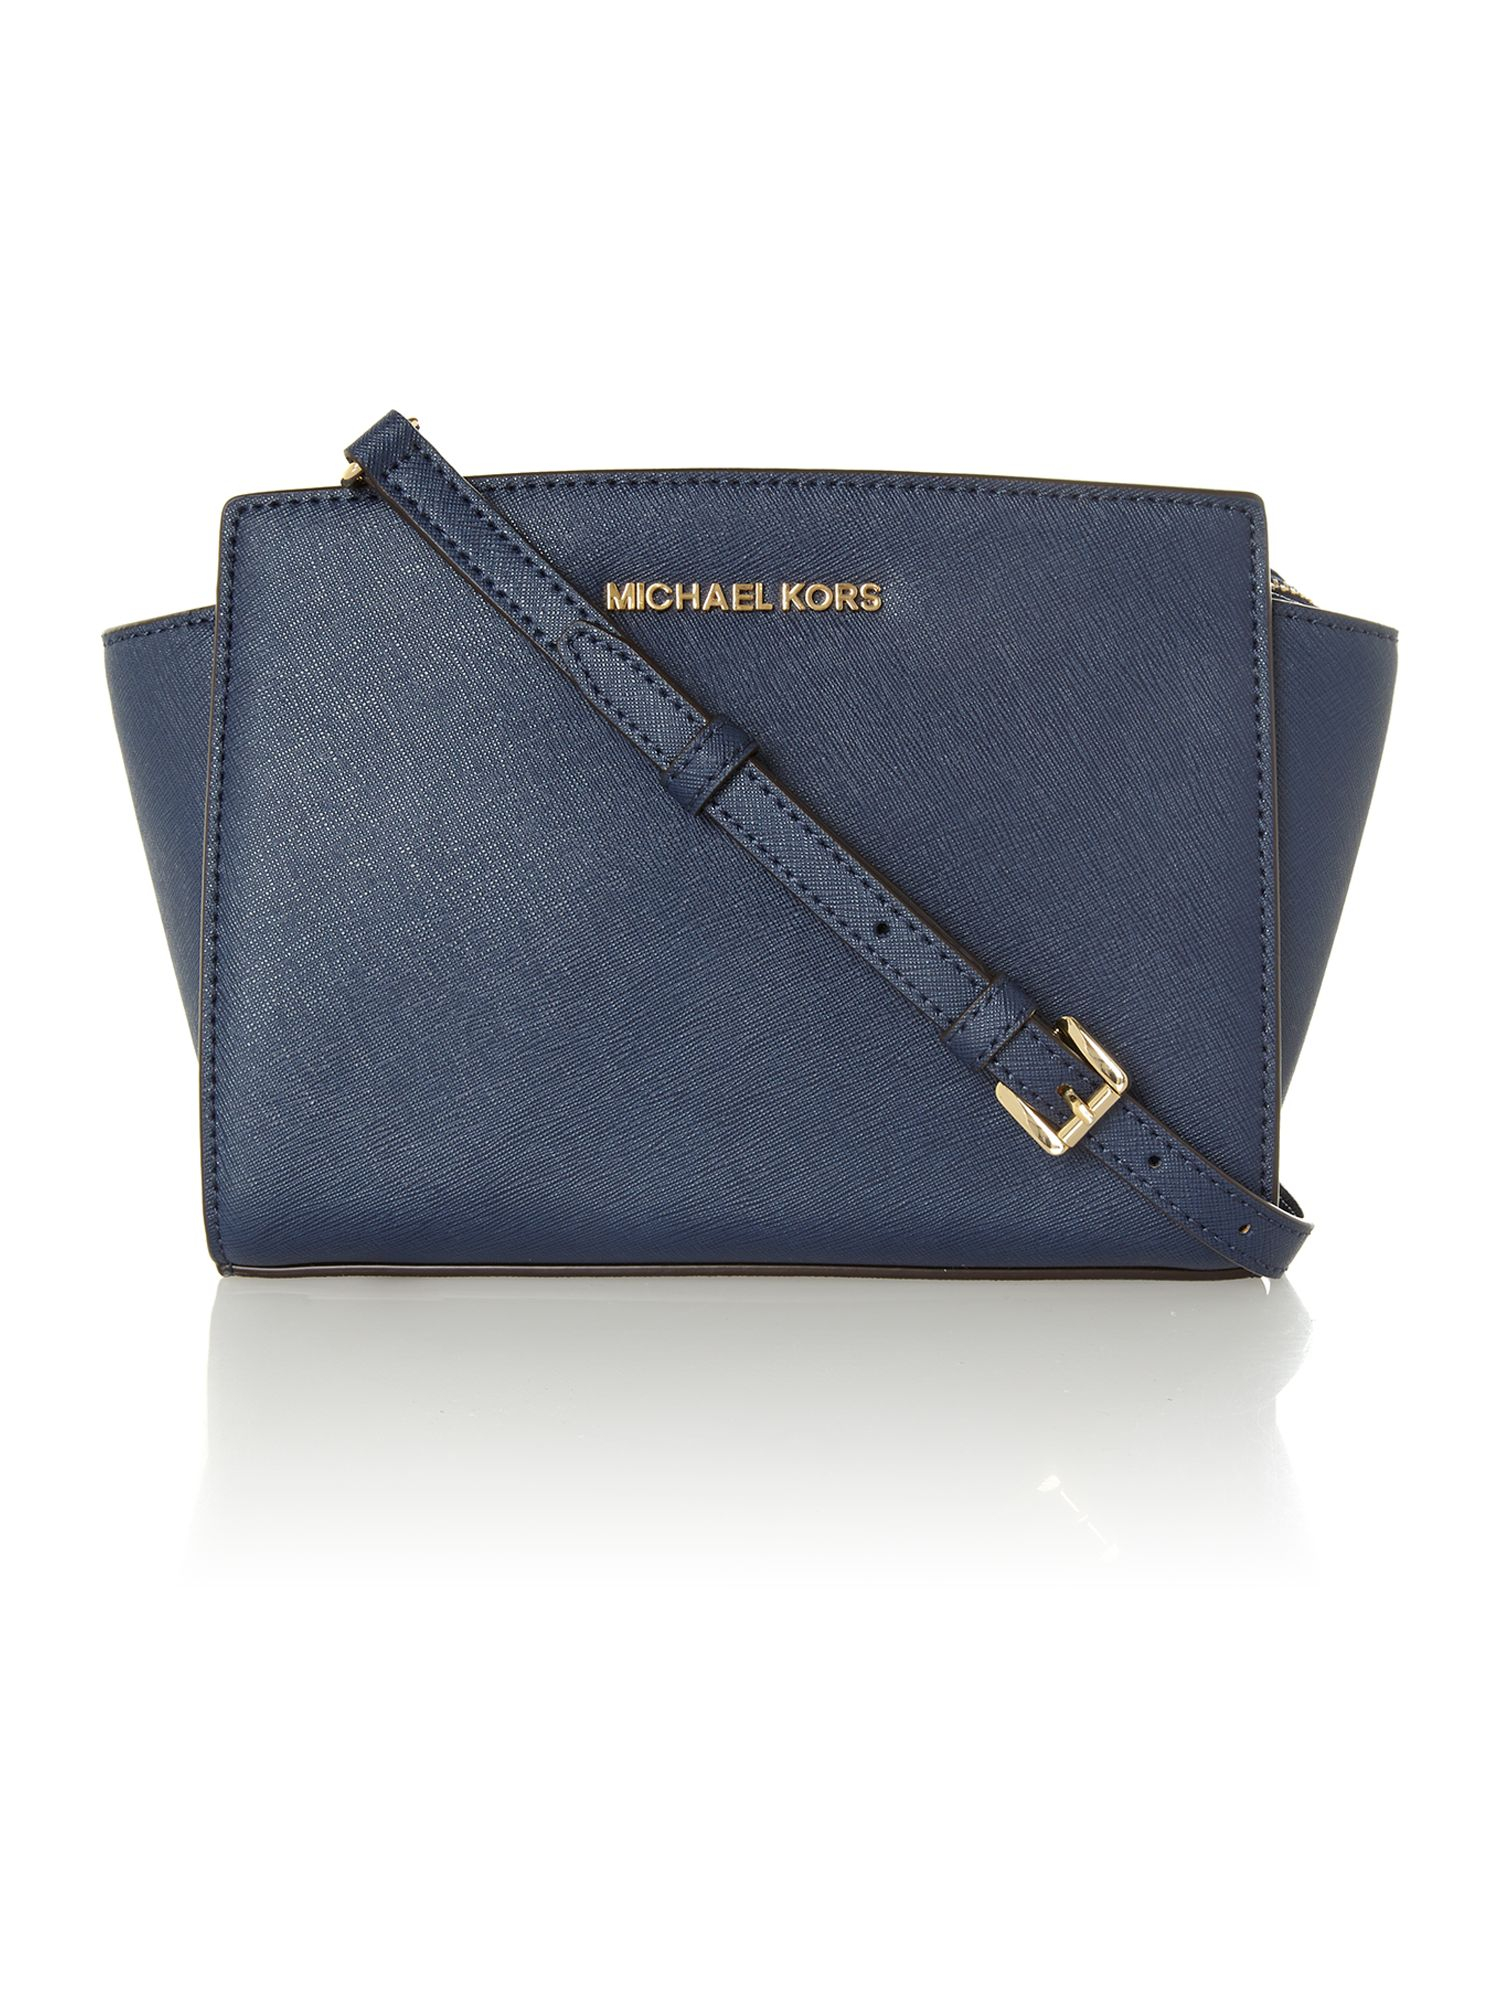 michael kors selma navy small cross body bag in blue lyst. Black Bedroom Furniture Sets. Home Design Ideas